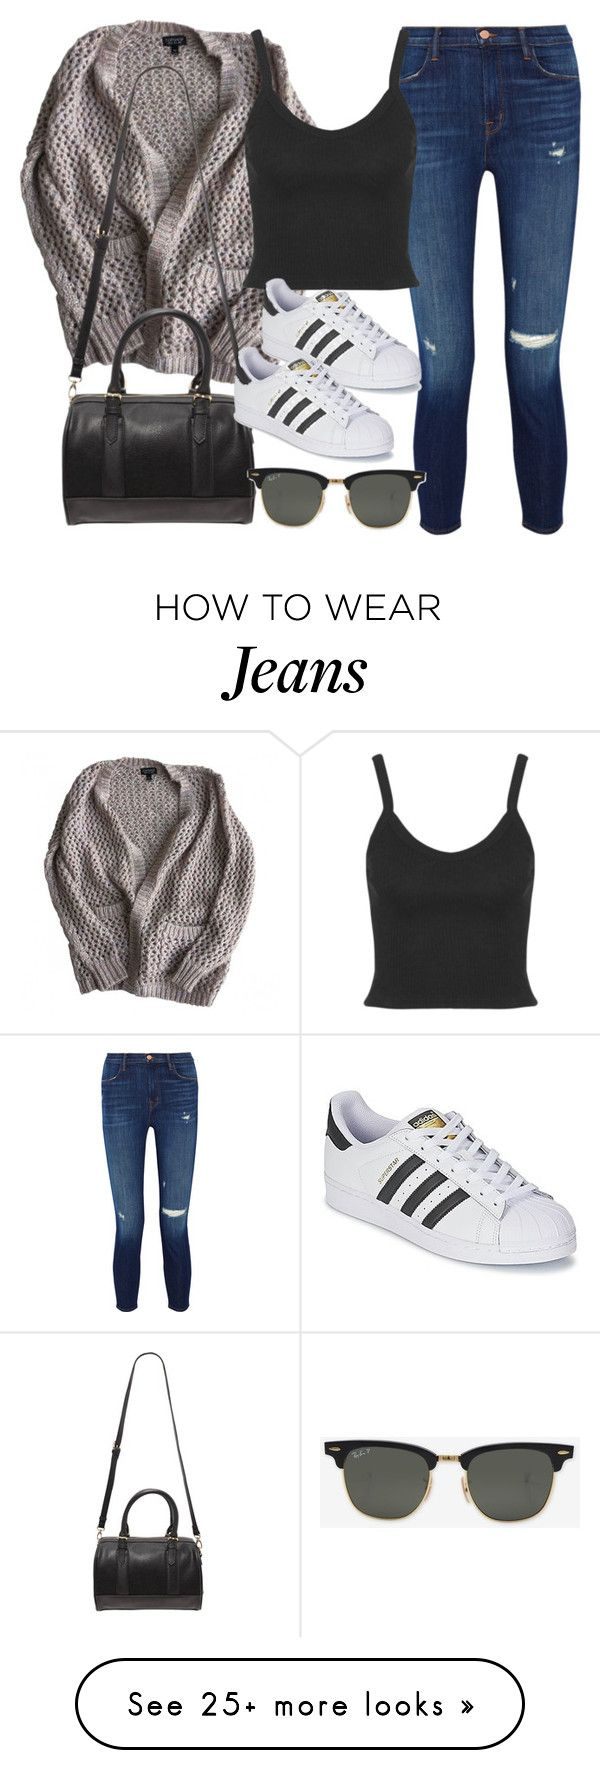 """Style #11571"" by vany-alvarado on Polyvore featuring J Brand, Topshop, Forever 21, adidas and Ray-Ban"